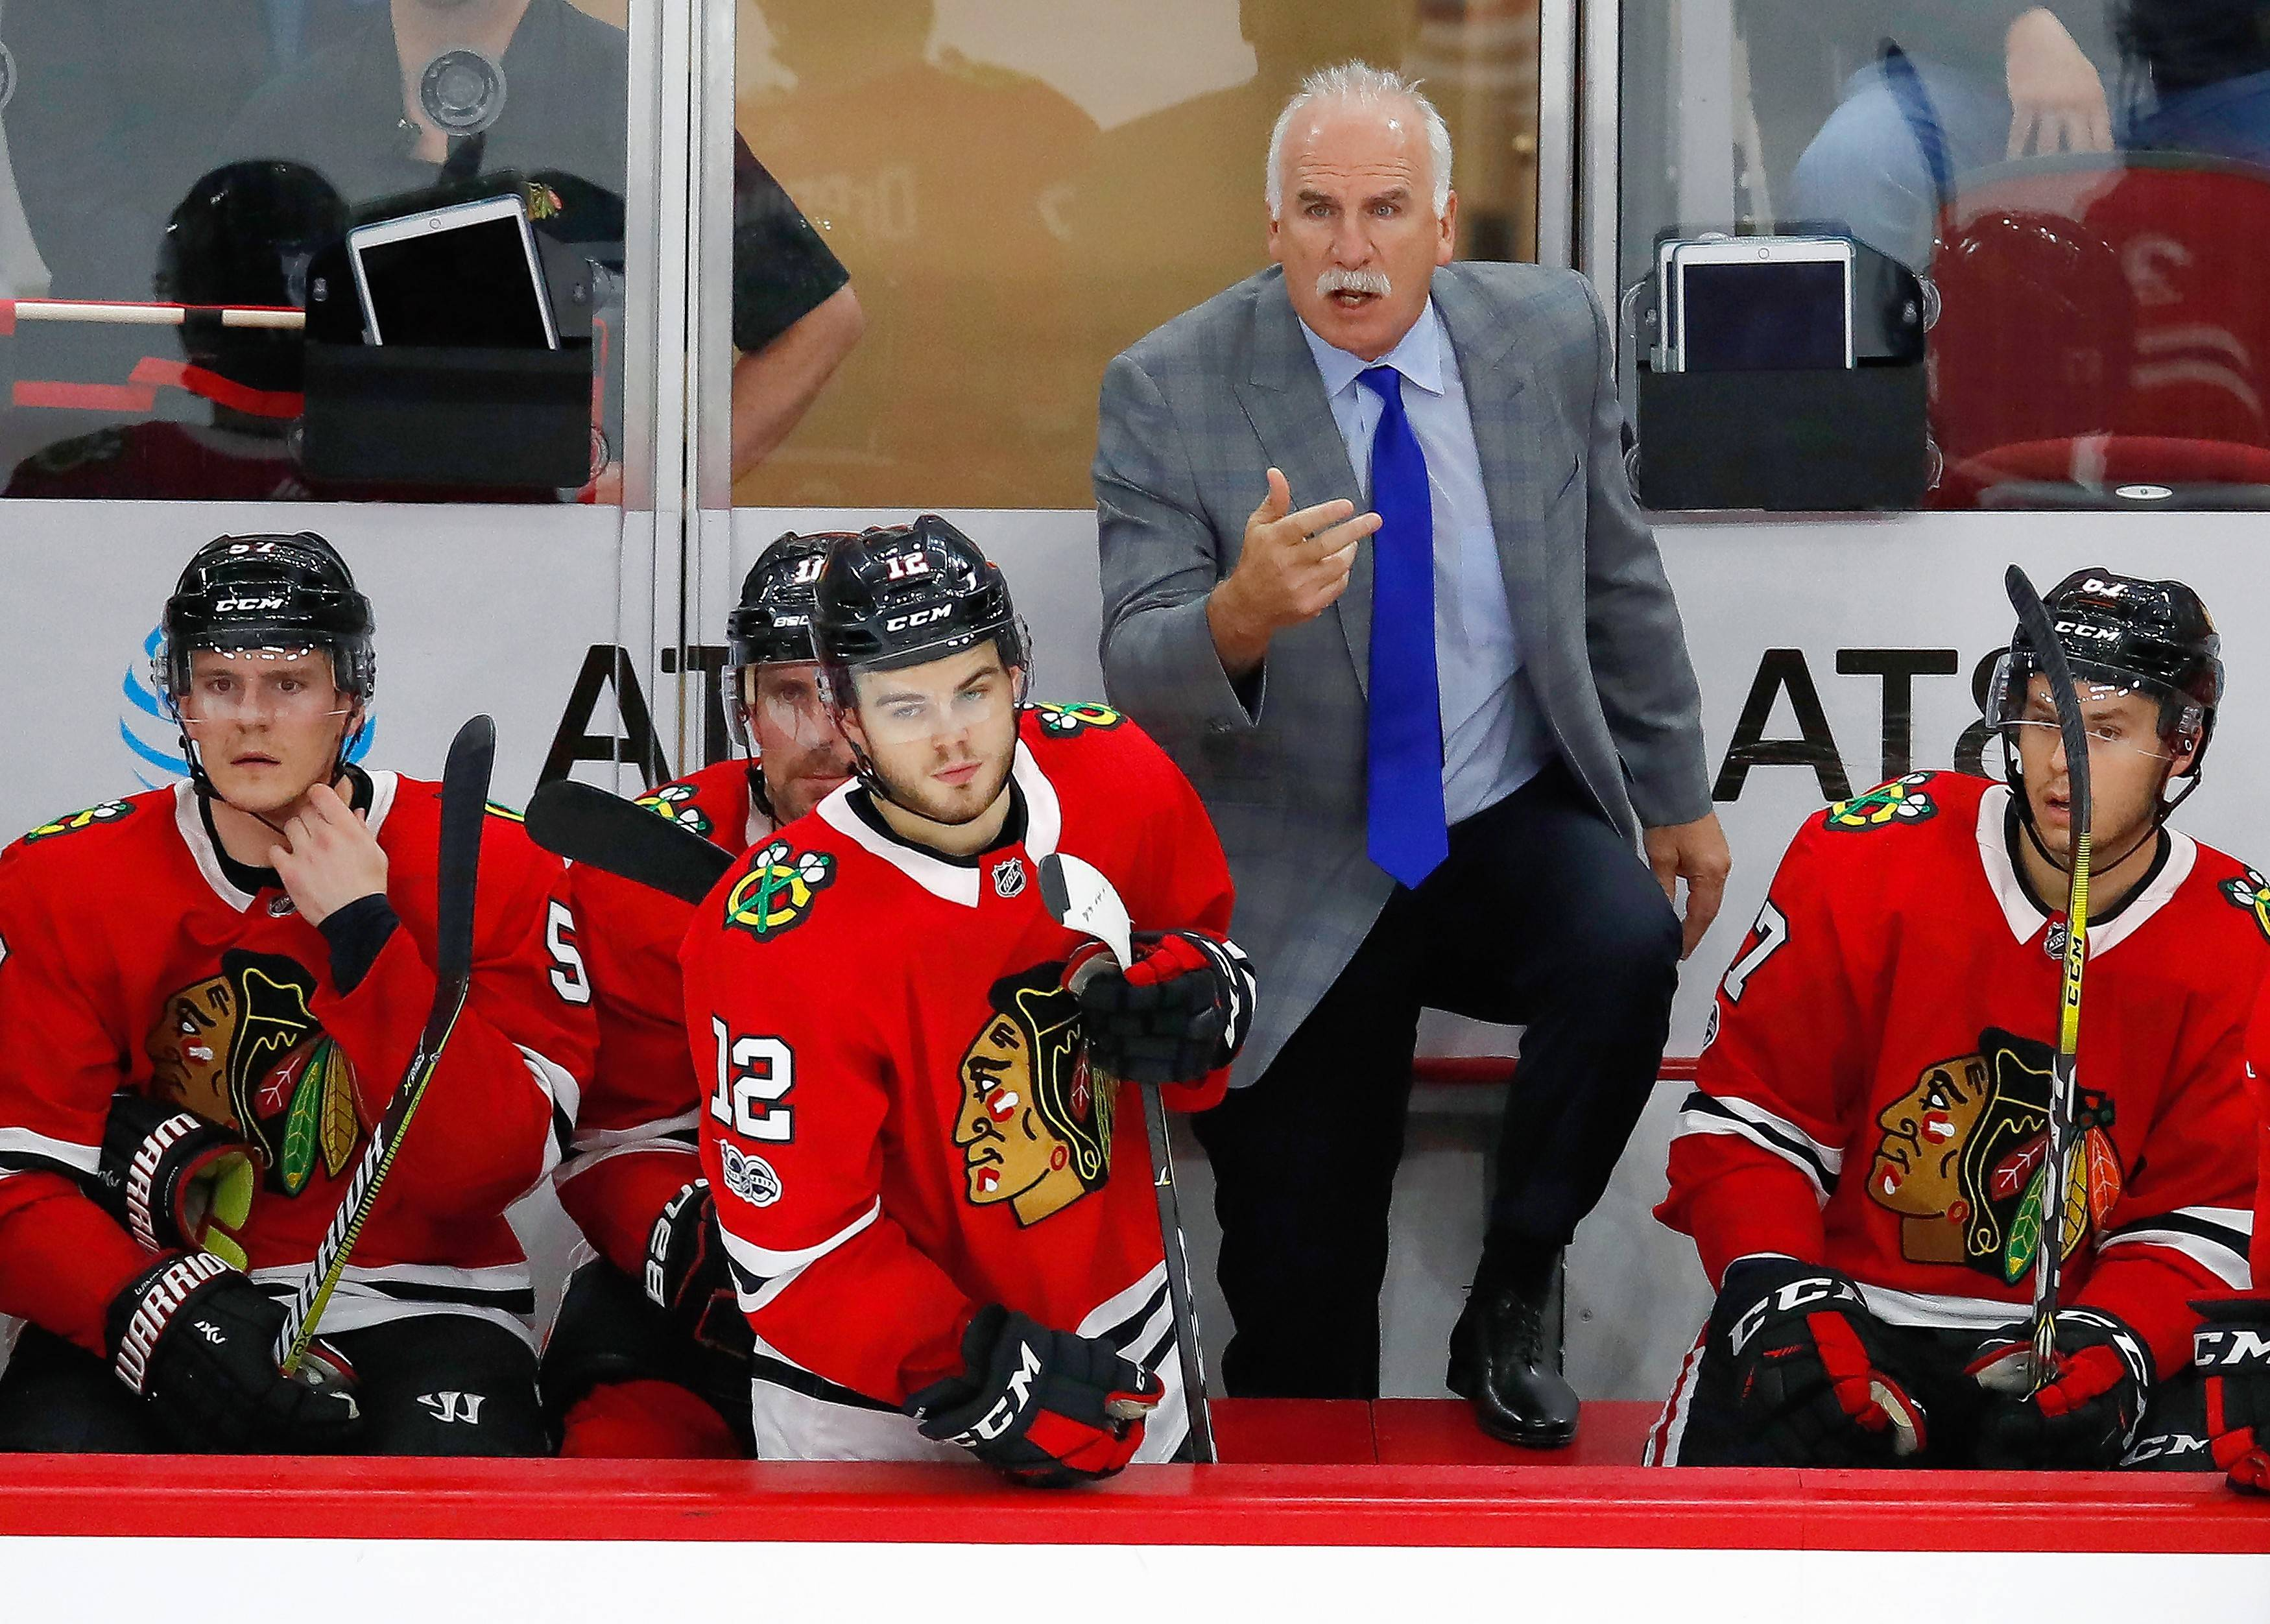 "The Blackhawks mixed up the power-play units at practice Tuesday night, hoping to get a spark from the struggling units in their upcoming games. Head coach Joel Quenneville likes how the Hawks have entered the zone on the power play, but doesn't like how his team takes so long to find the perfect shot. ""(That's) where we've been getting slowed down a little bit,"" Quenneville said. ""We feel like we have a lot of motion in our 5-on-5 game. Don't stay stationary or predictable."""